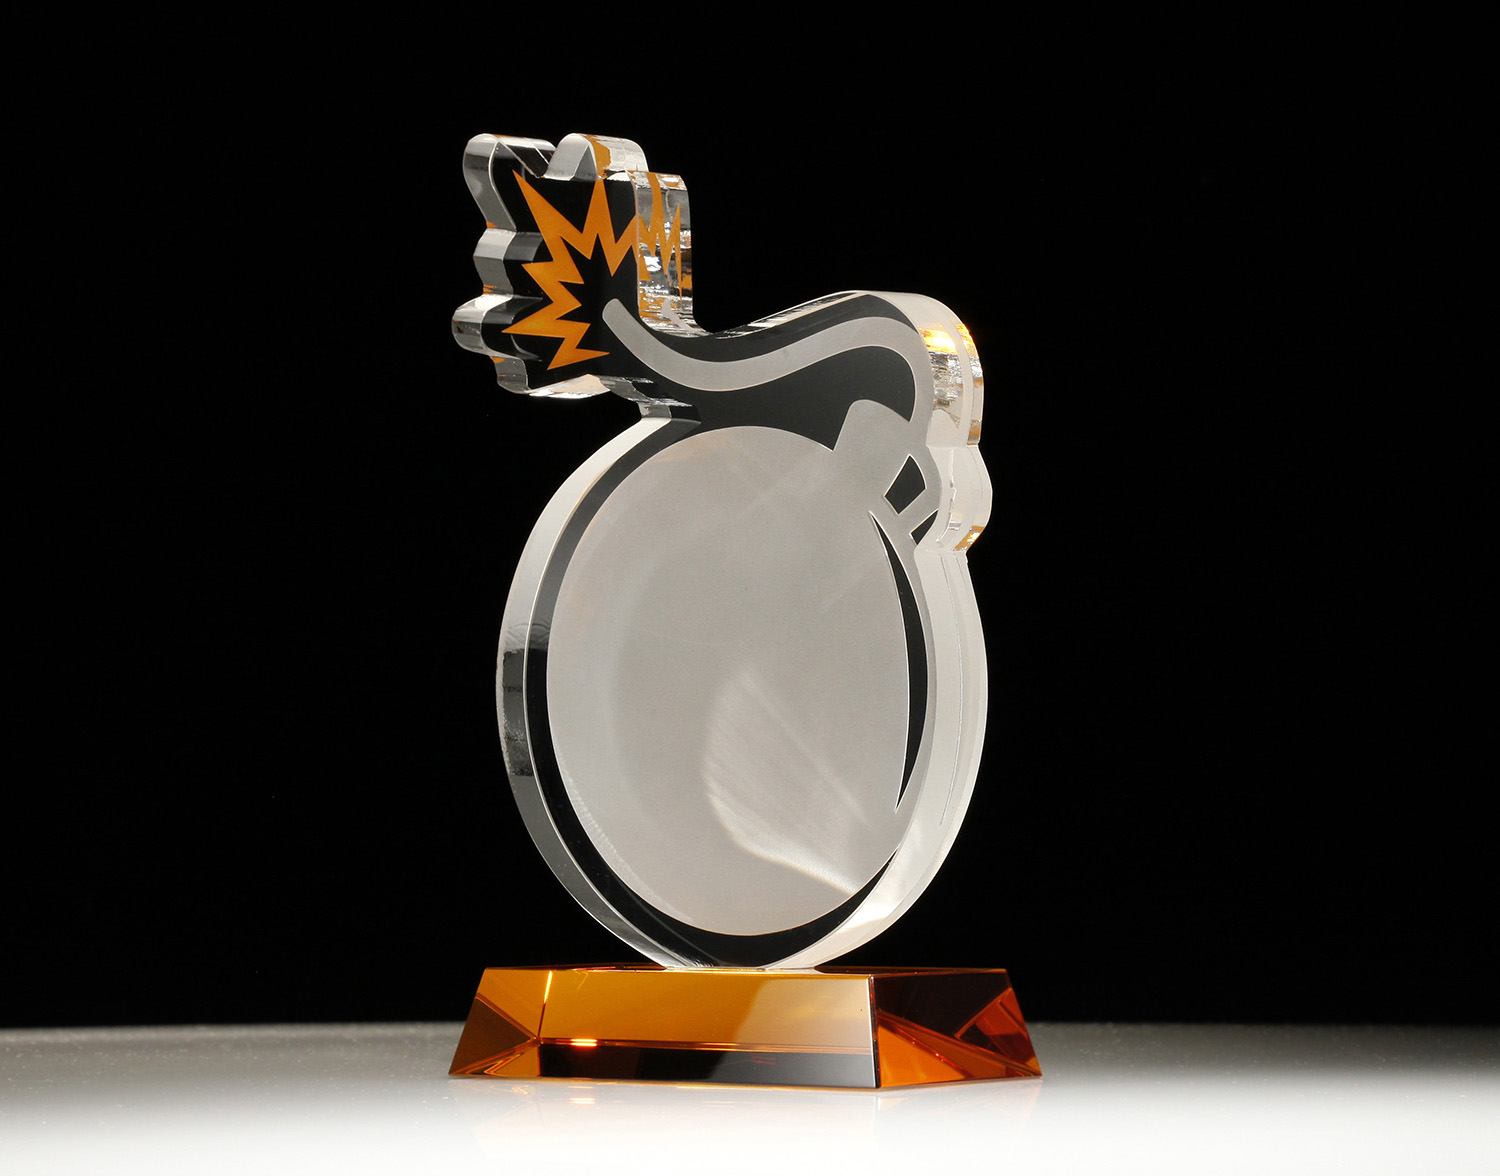 Trophies and Awards - Motivating Employees with Non-Cash Incentives